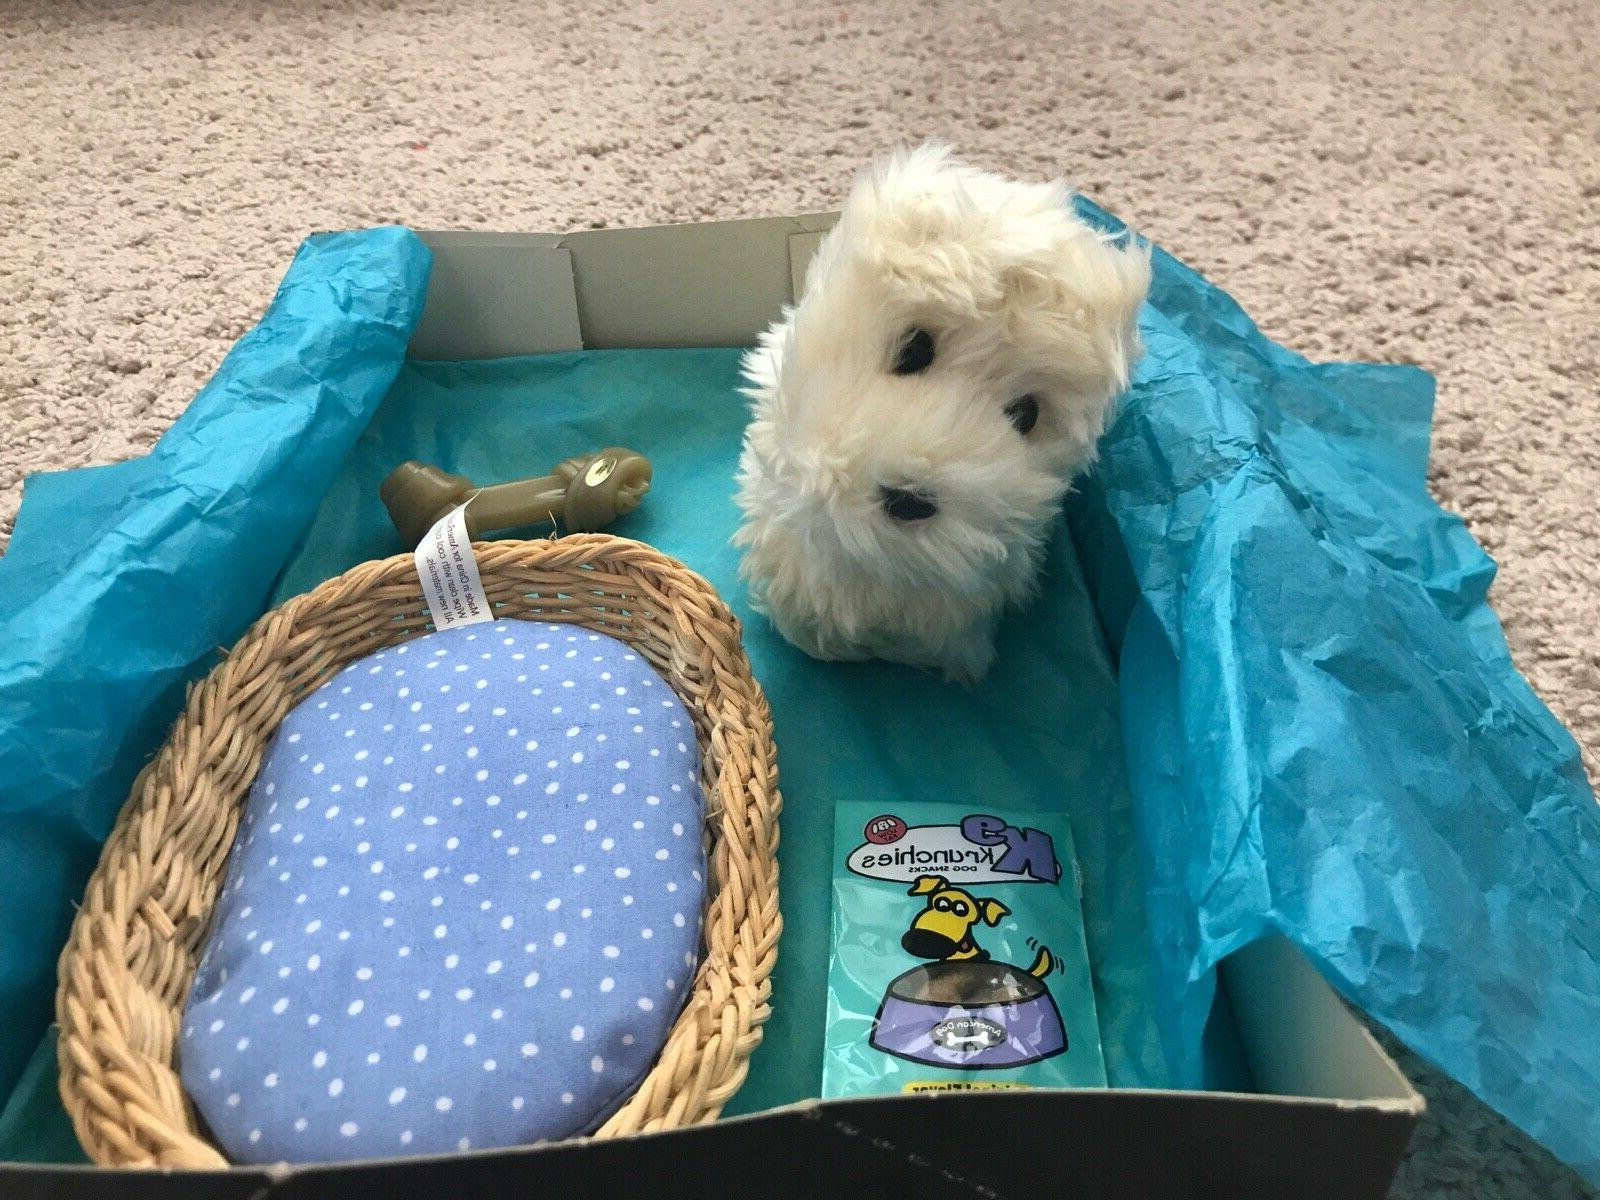 doll dog coconut 2000 first edition